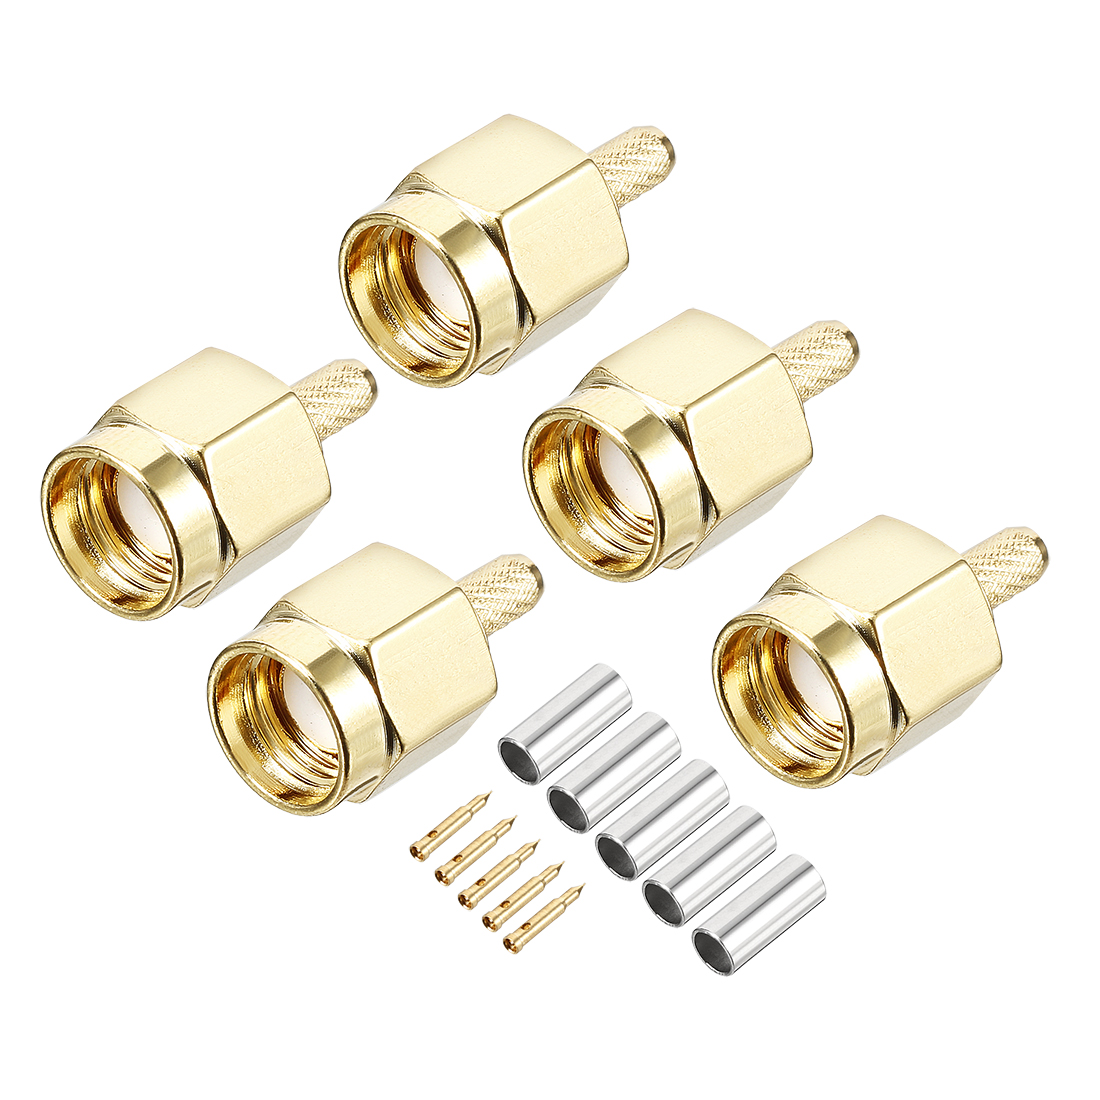 5 pcs Gold-plated SMA Male Jack RF Coaxial Adapter Connector